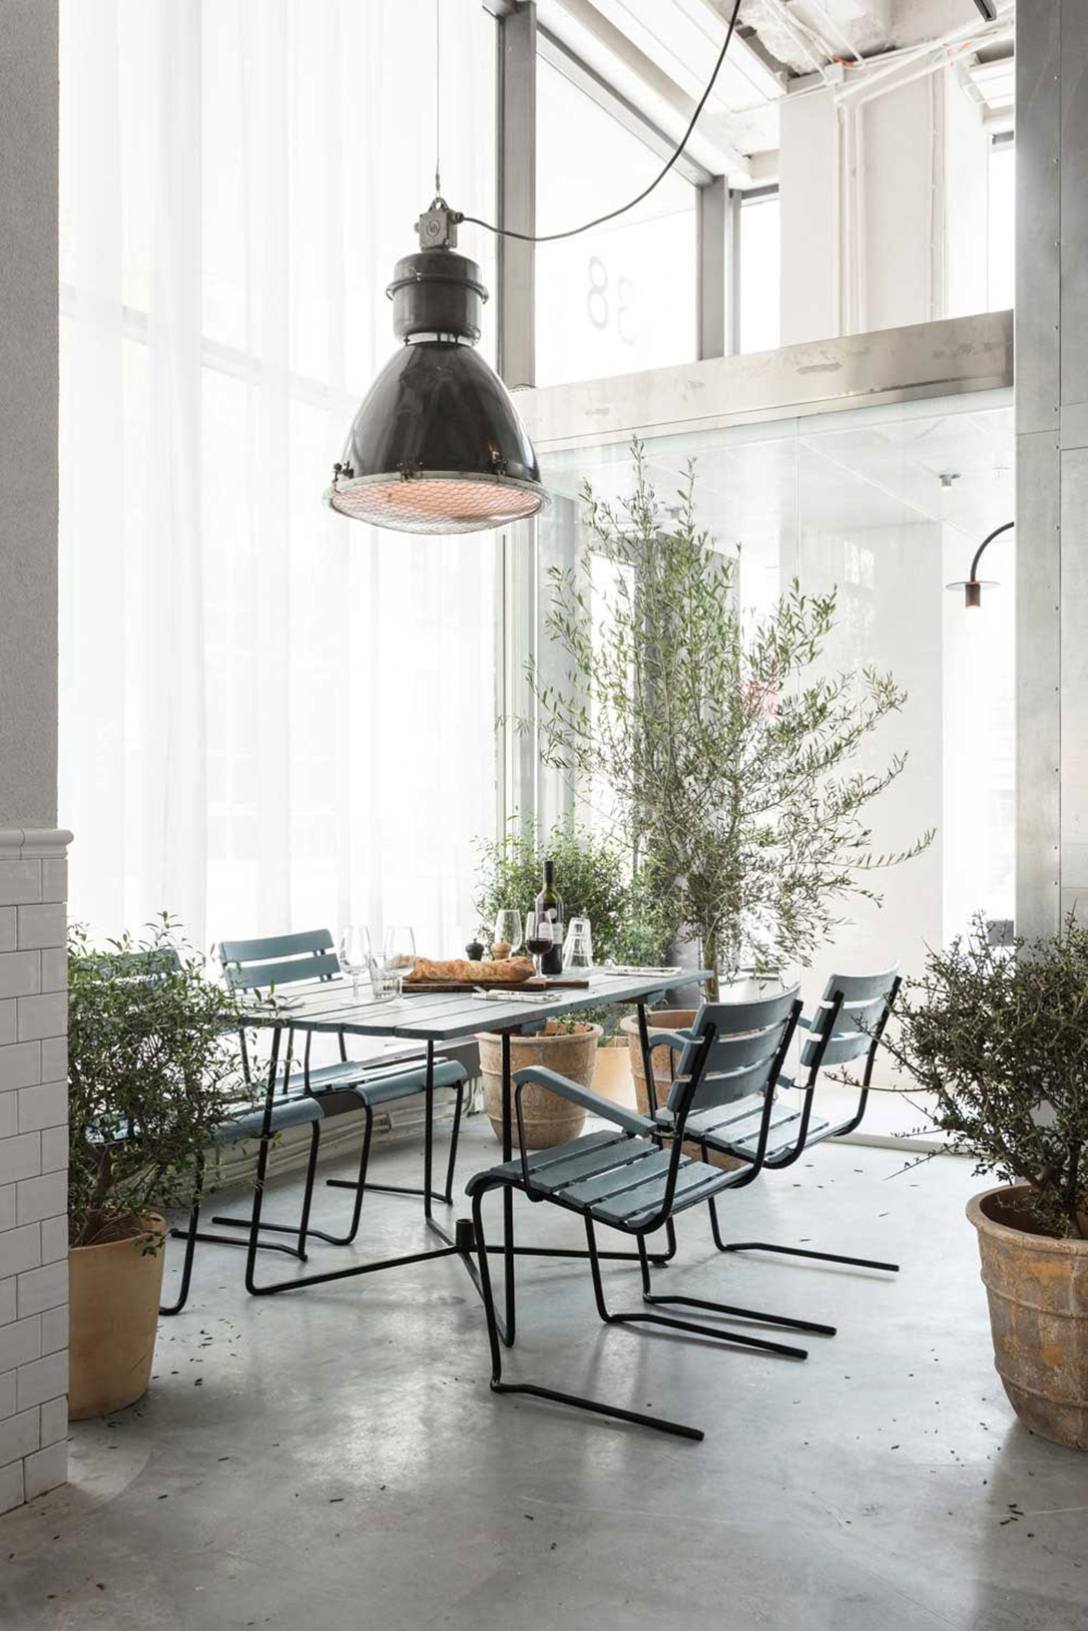 usine-restaurant-in-stockholm-by-richard-lindvall-yellowtrace-001